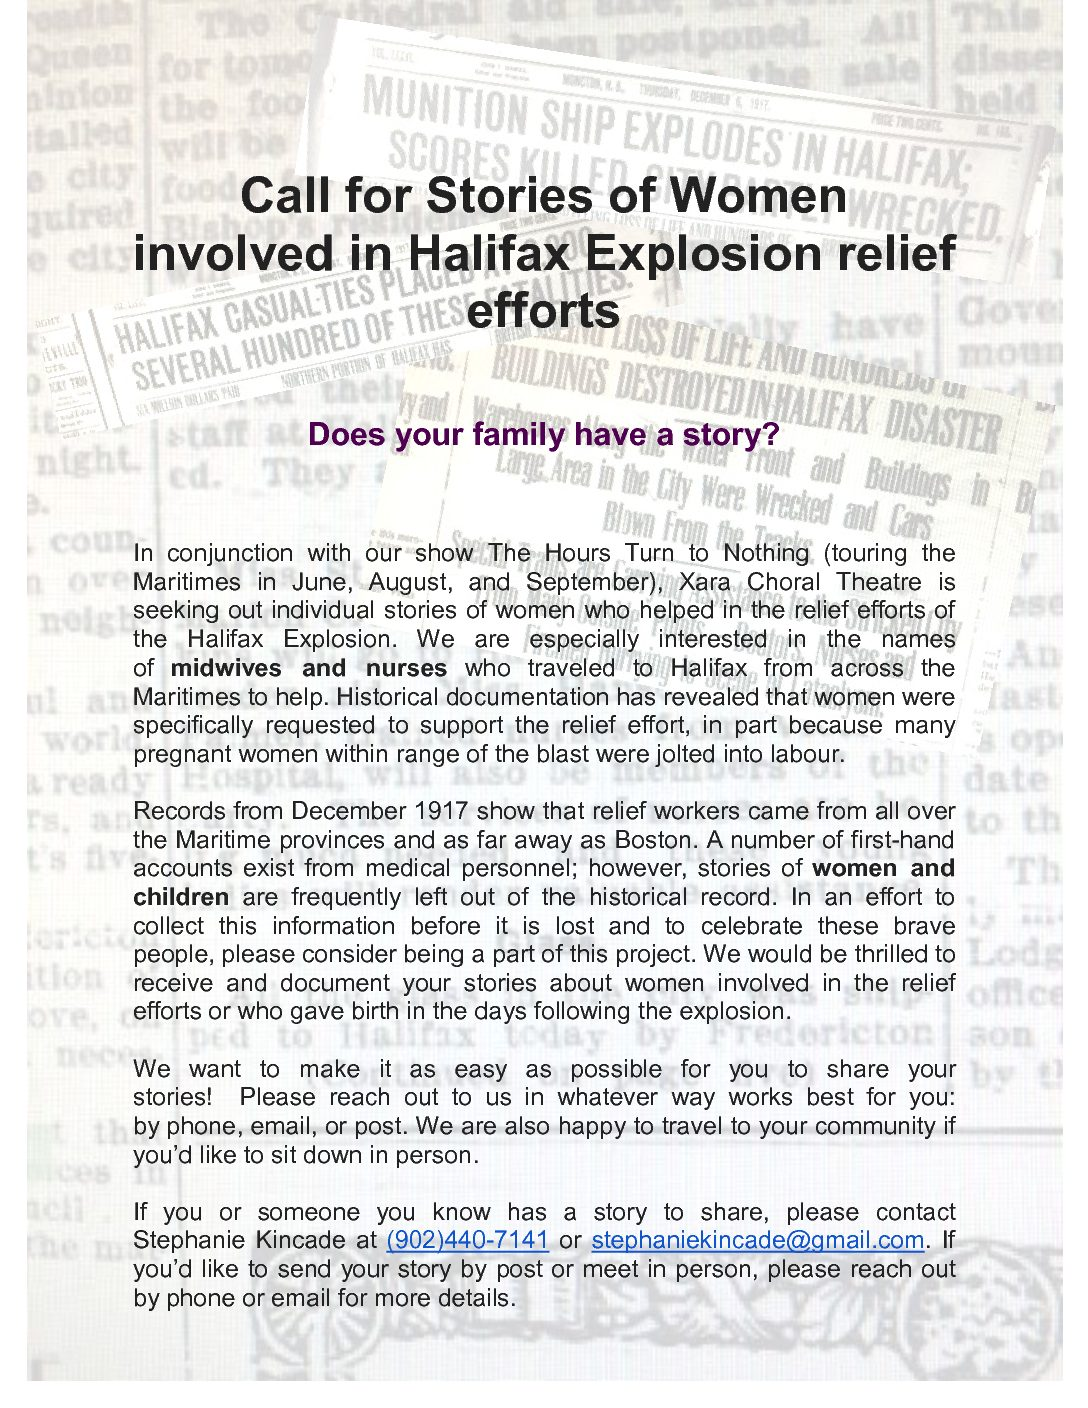 Call for Stories of Women involved in Halifax Explosion relief